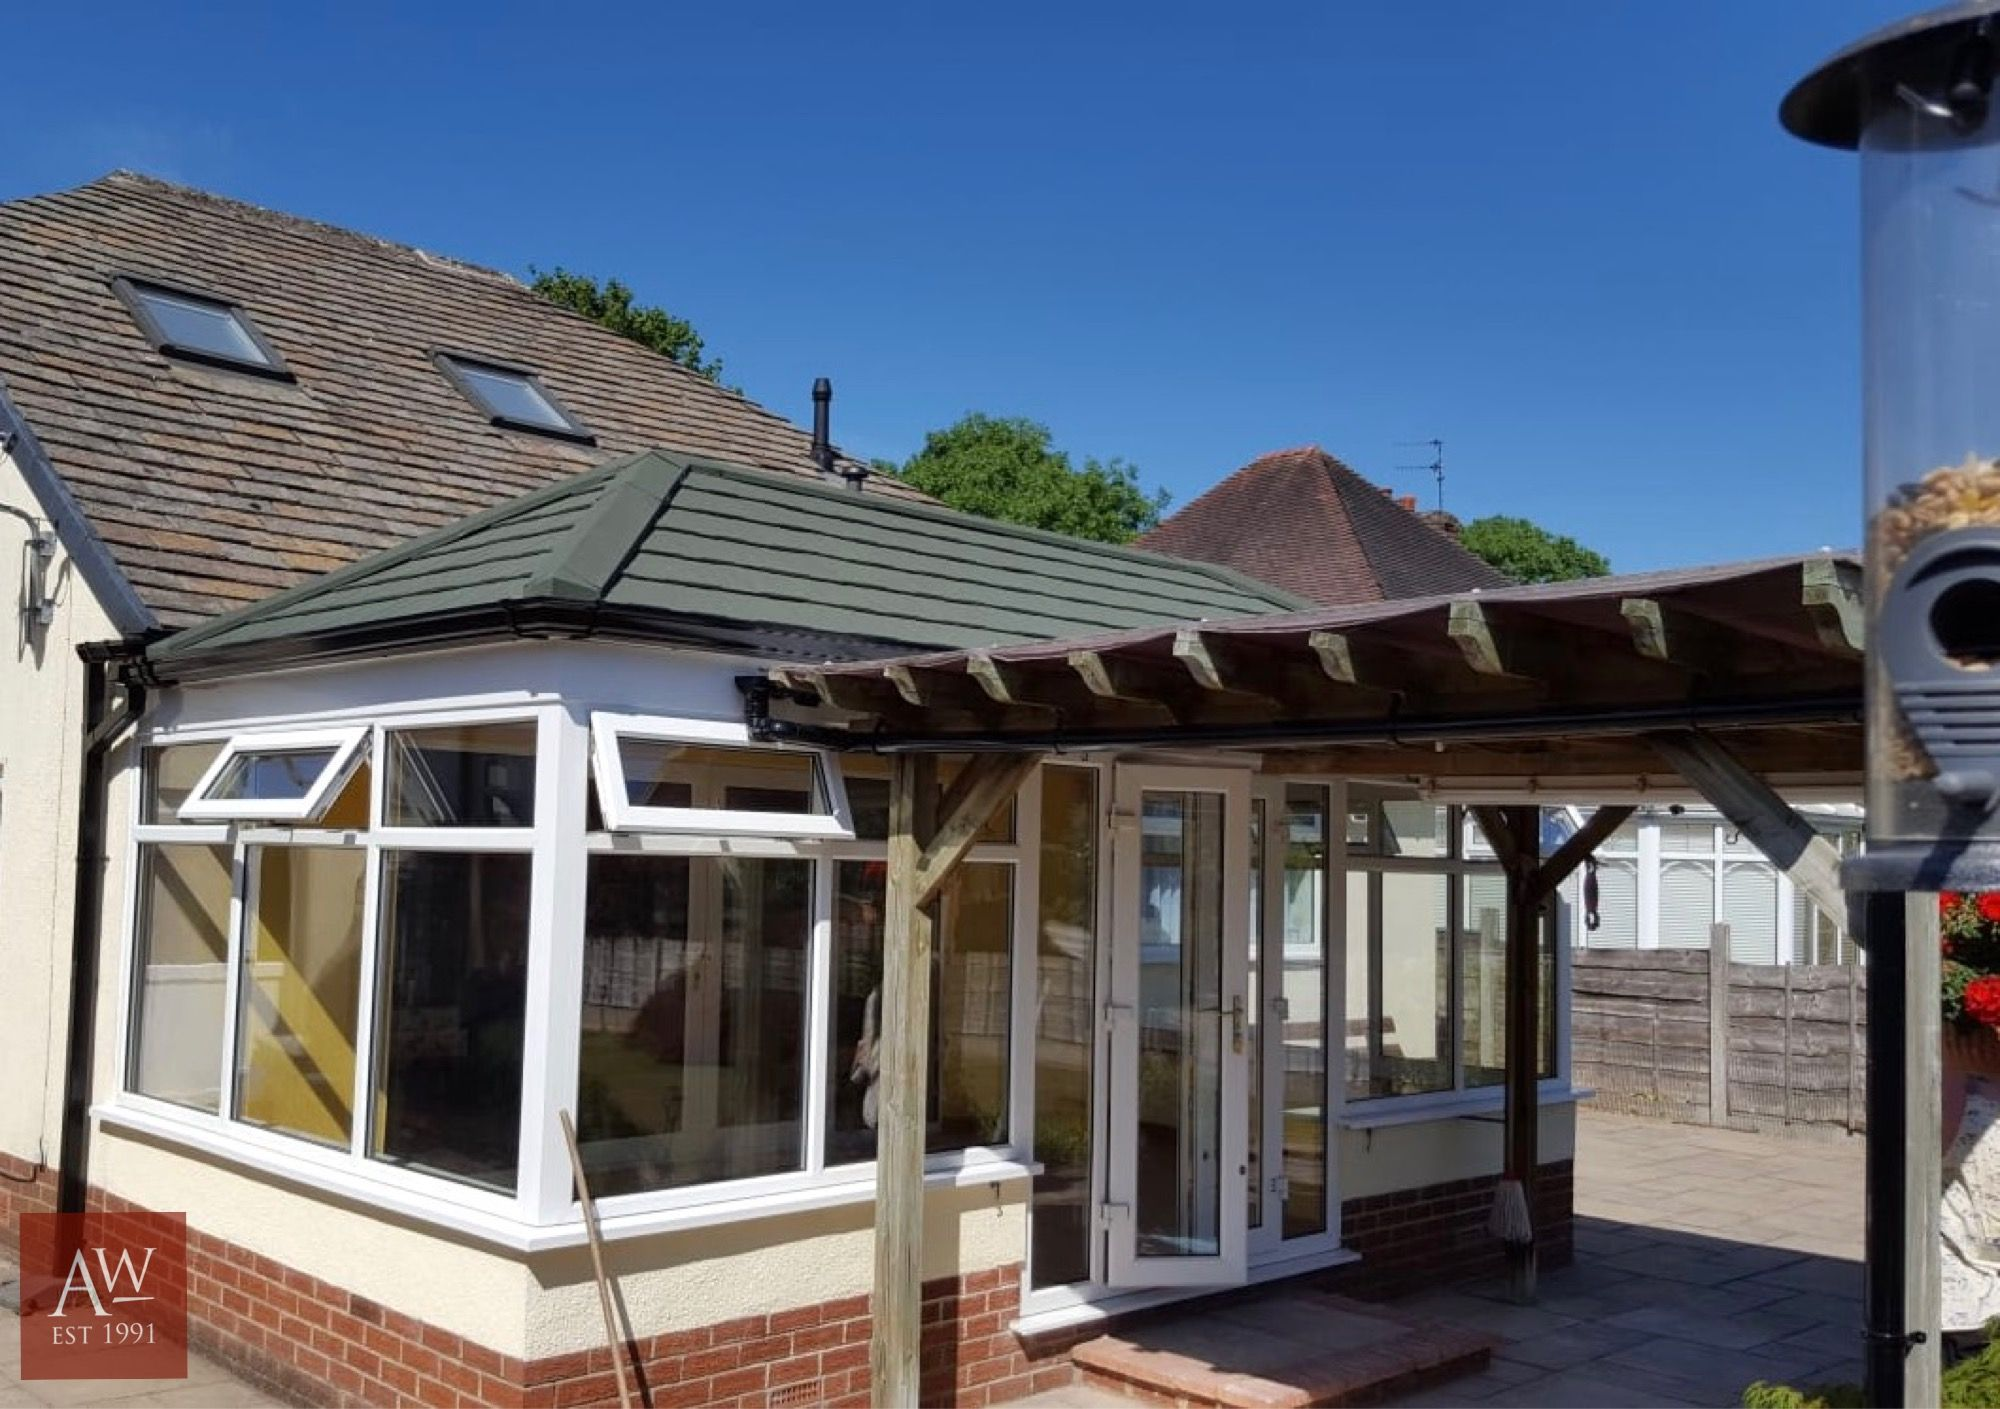 Guardian Roofs In Stockport Alexander Windows Warm Roof Tiled Conservatory Roof Conservatory Roof